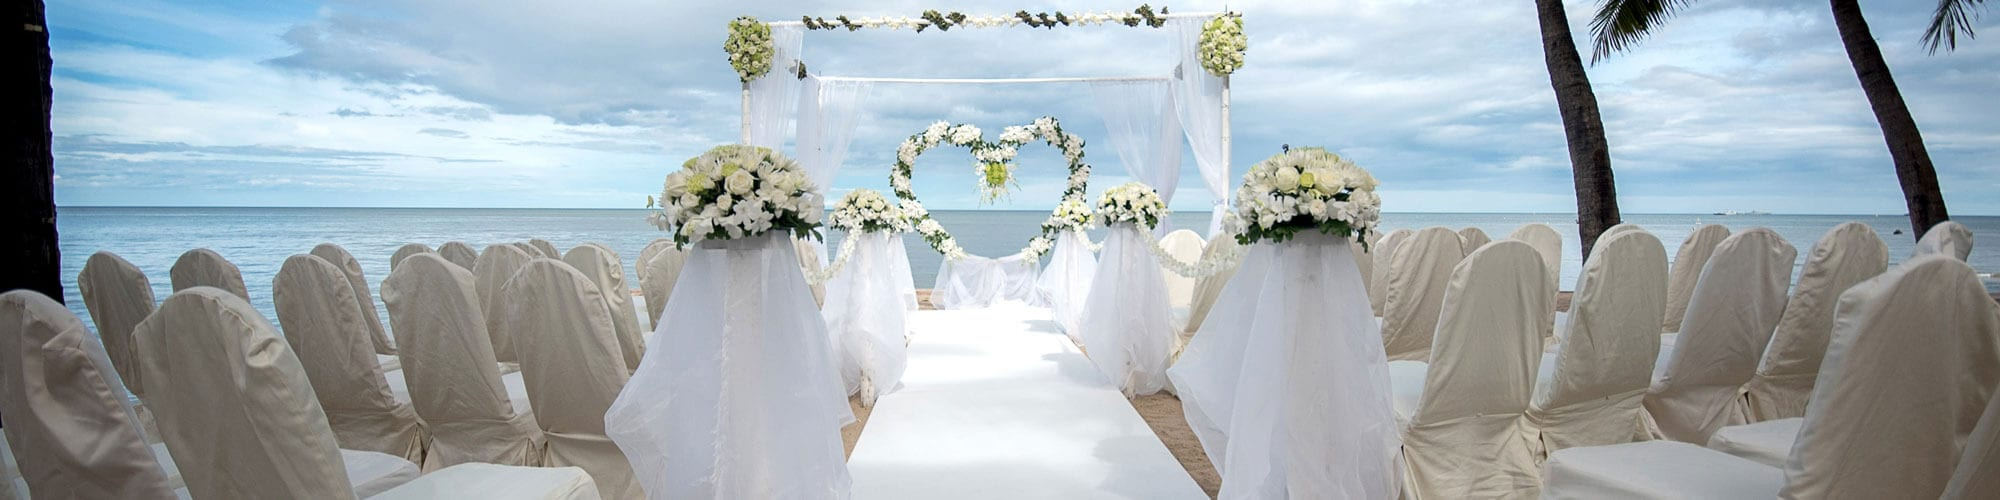 wedding ceremony aisle on the beach with chairs on either side